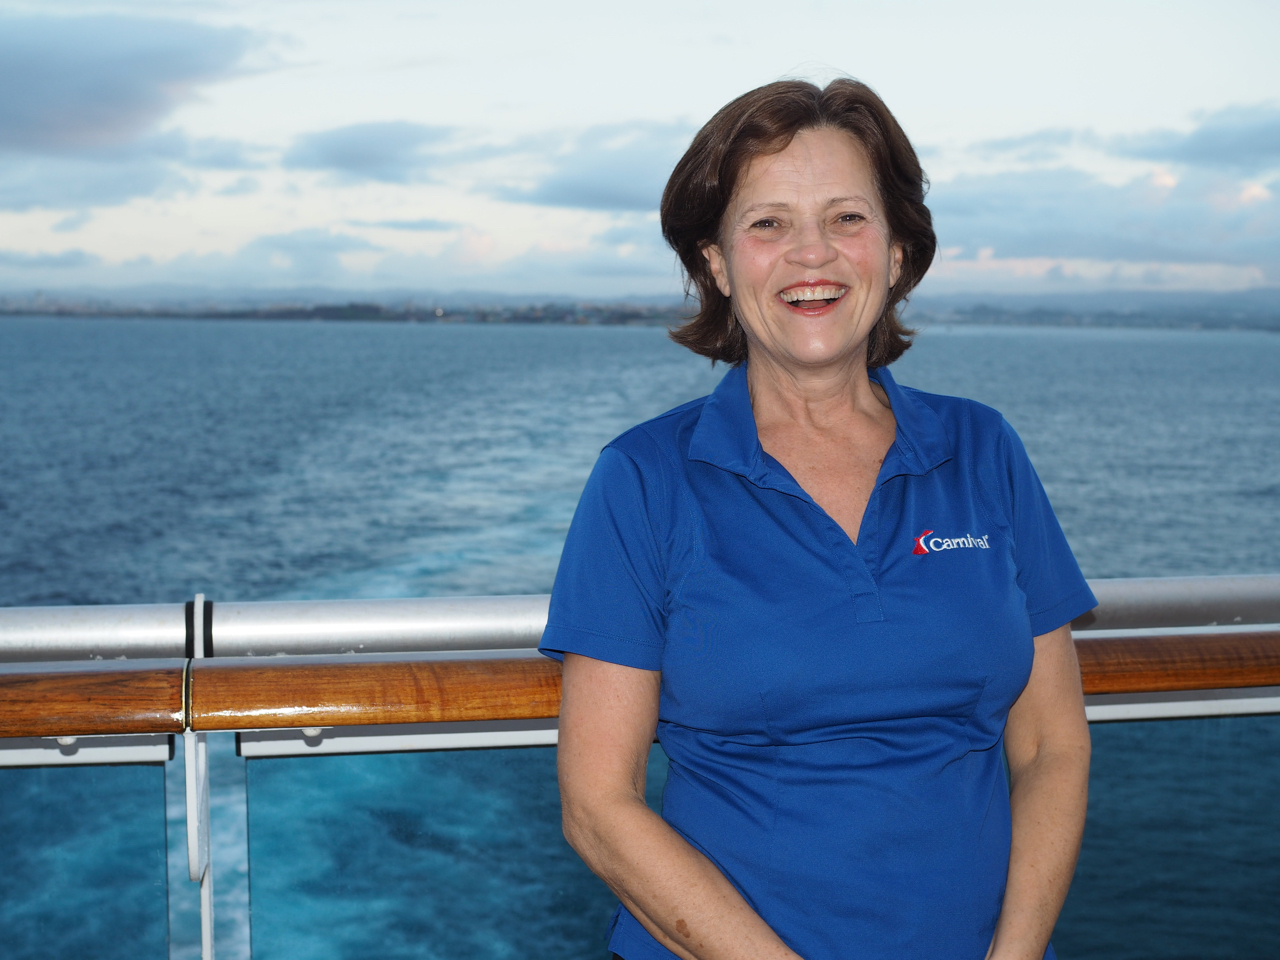 Lynne St-Jean, Director of Business Development for Carnival Cruise Line in Canada